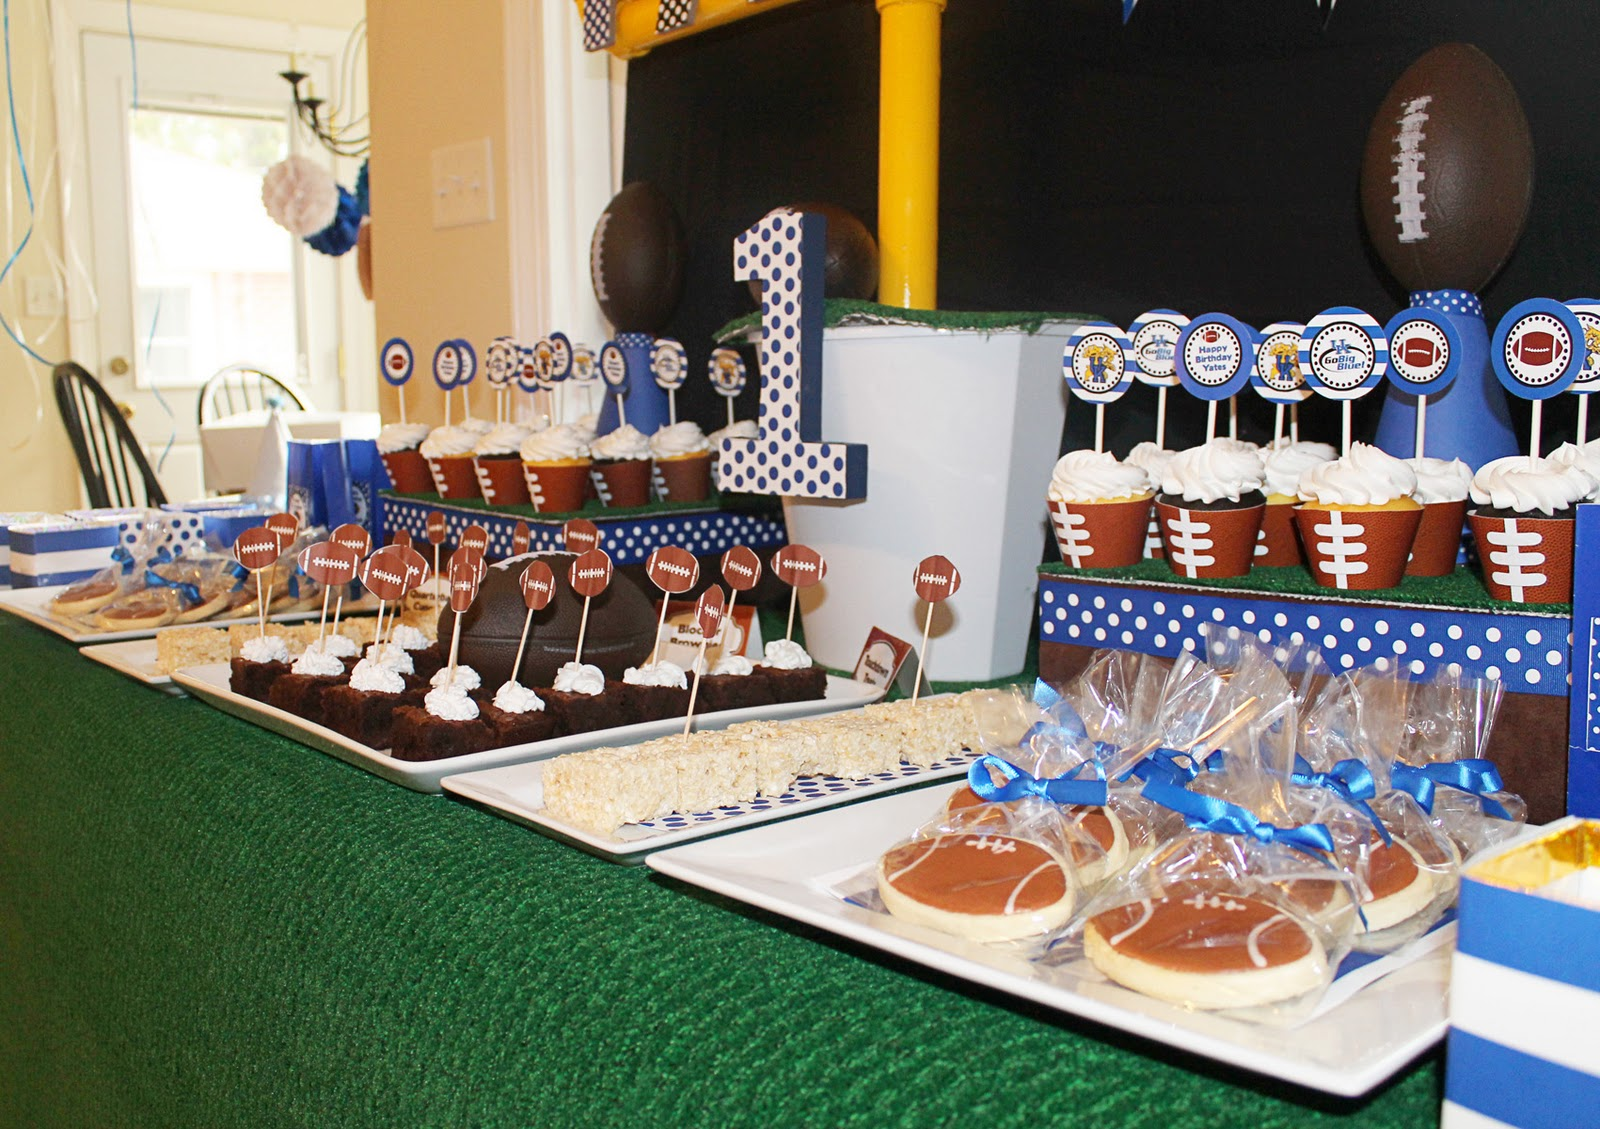 Amanda39s Parties To Go Football Party Customer Party & Football Party Decorations Ideas - Elitflat